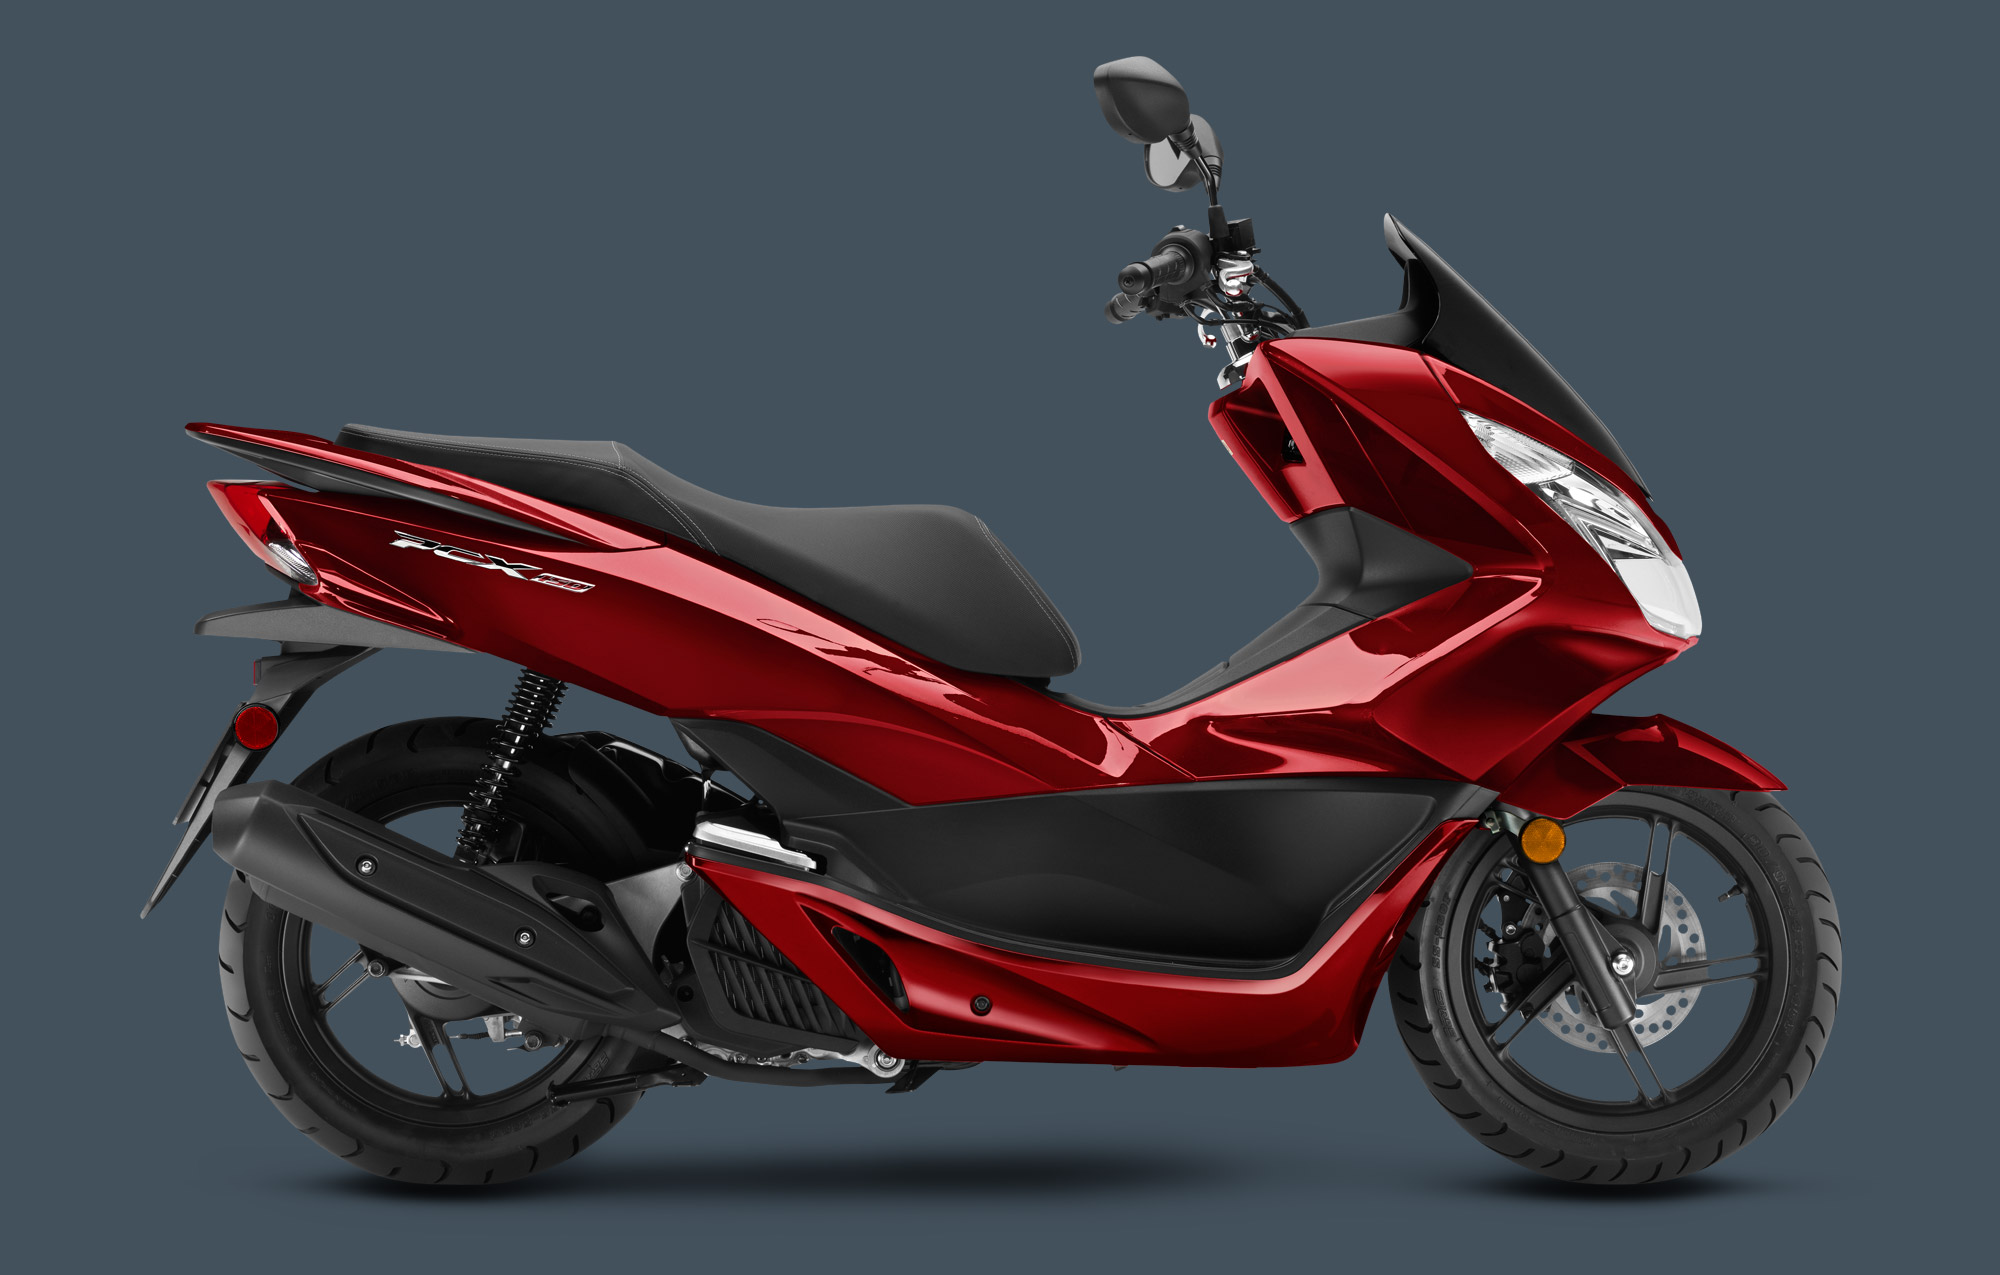 we hybrid other lower of features honda for a designed us mini climate and compared scooter given goes may world them greener the current in featureshonda gas pcx cleaner to most markets cost electric see not